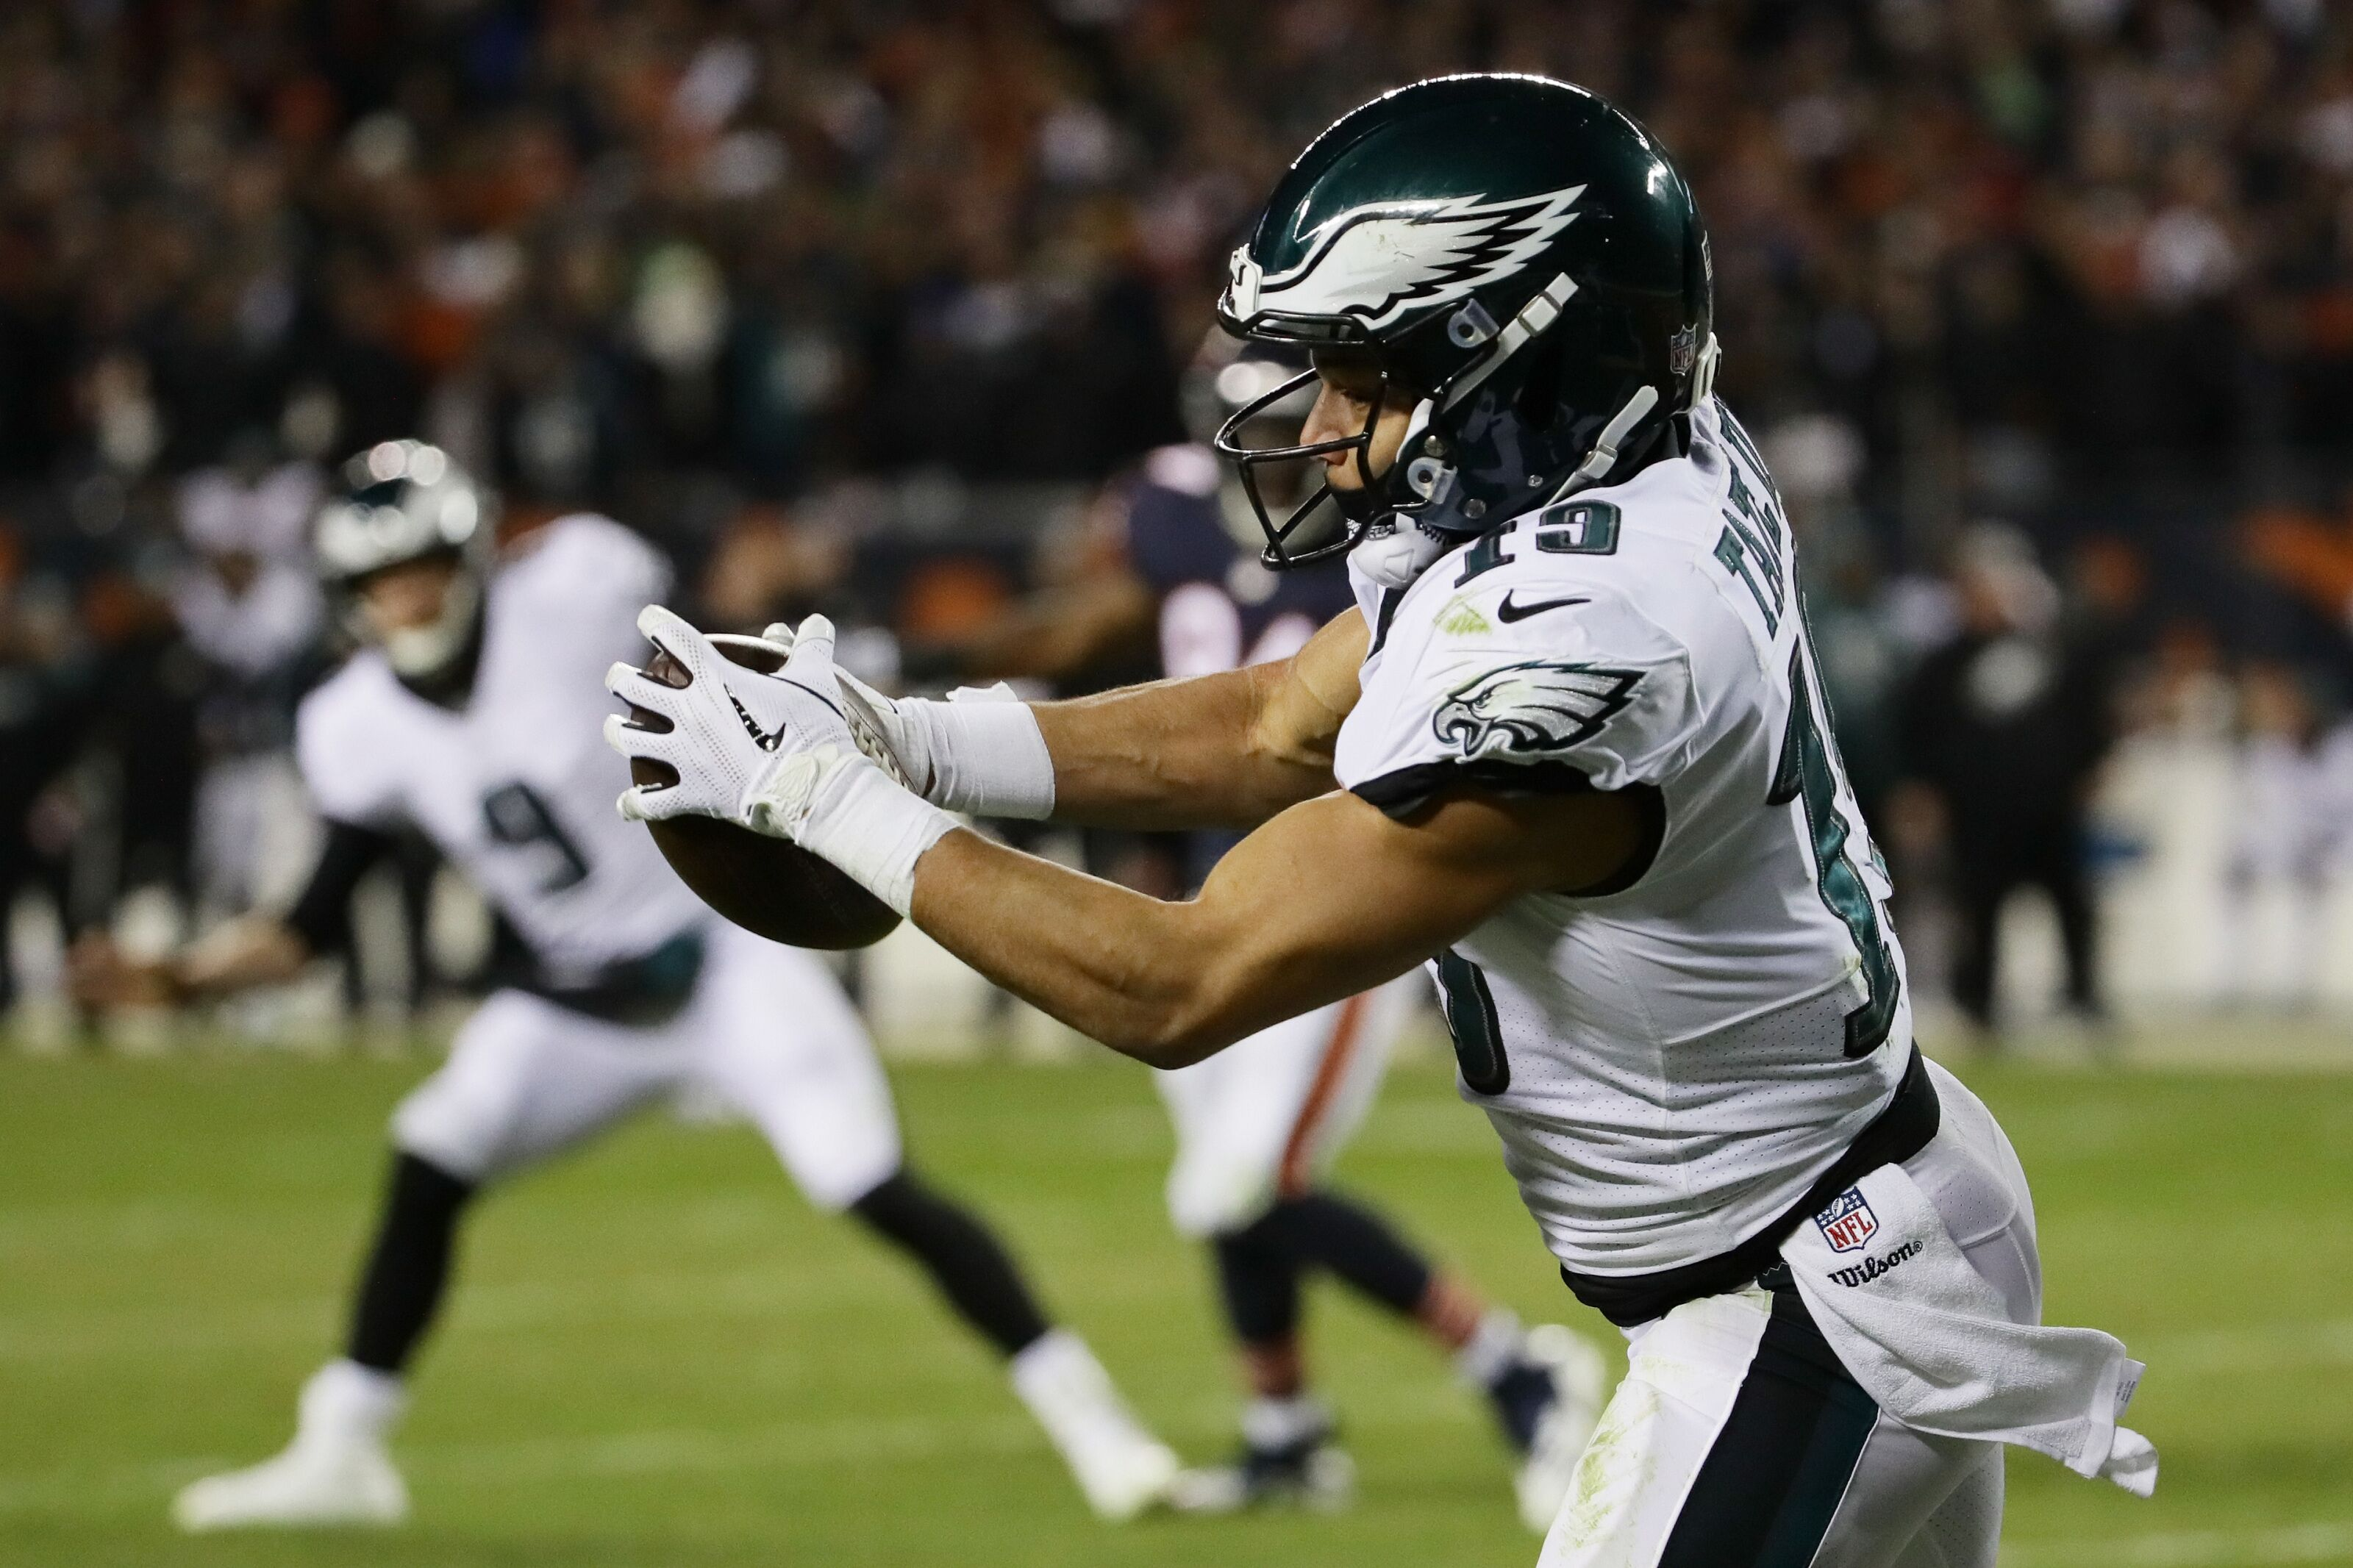 CHICAGO, ILLINOIS - JANUARY 06: Golden Tate #19 of the Philadelphia Eagles completes a reception to score a touchdown against the Chicago Bears in the fourth quarter of the NFC Wild Card Playoff game at Soldier Field on January 06, 2019 in Chicago, Illinois. (Photo by Jonathan Daniel/Getty Images)